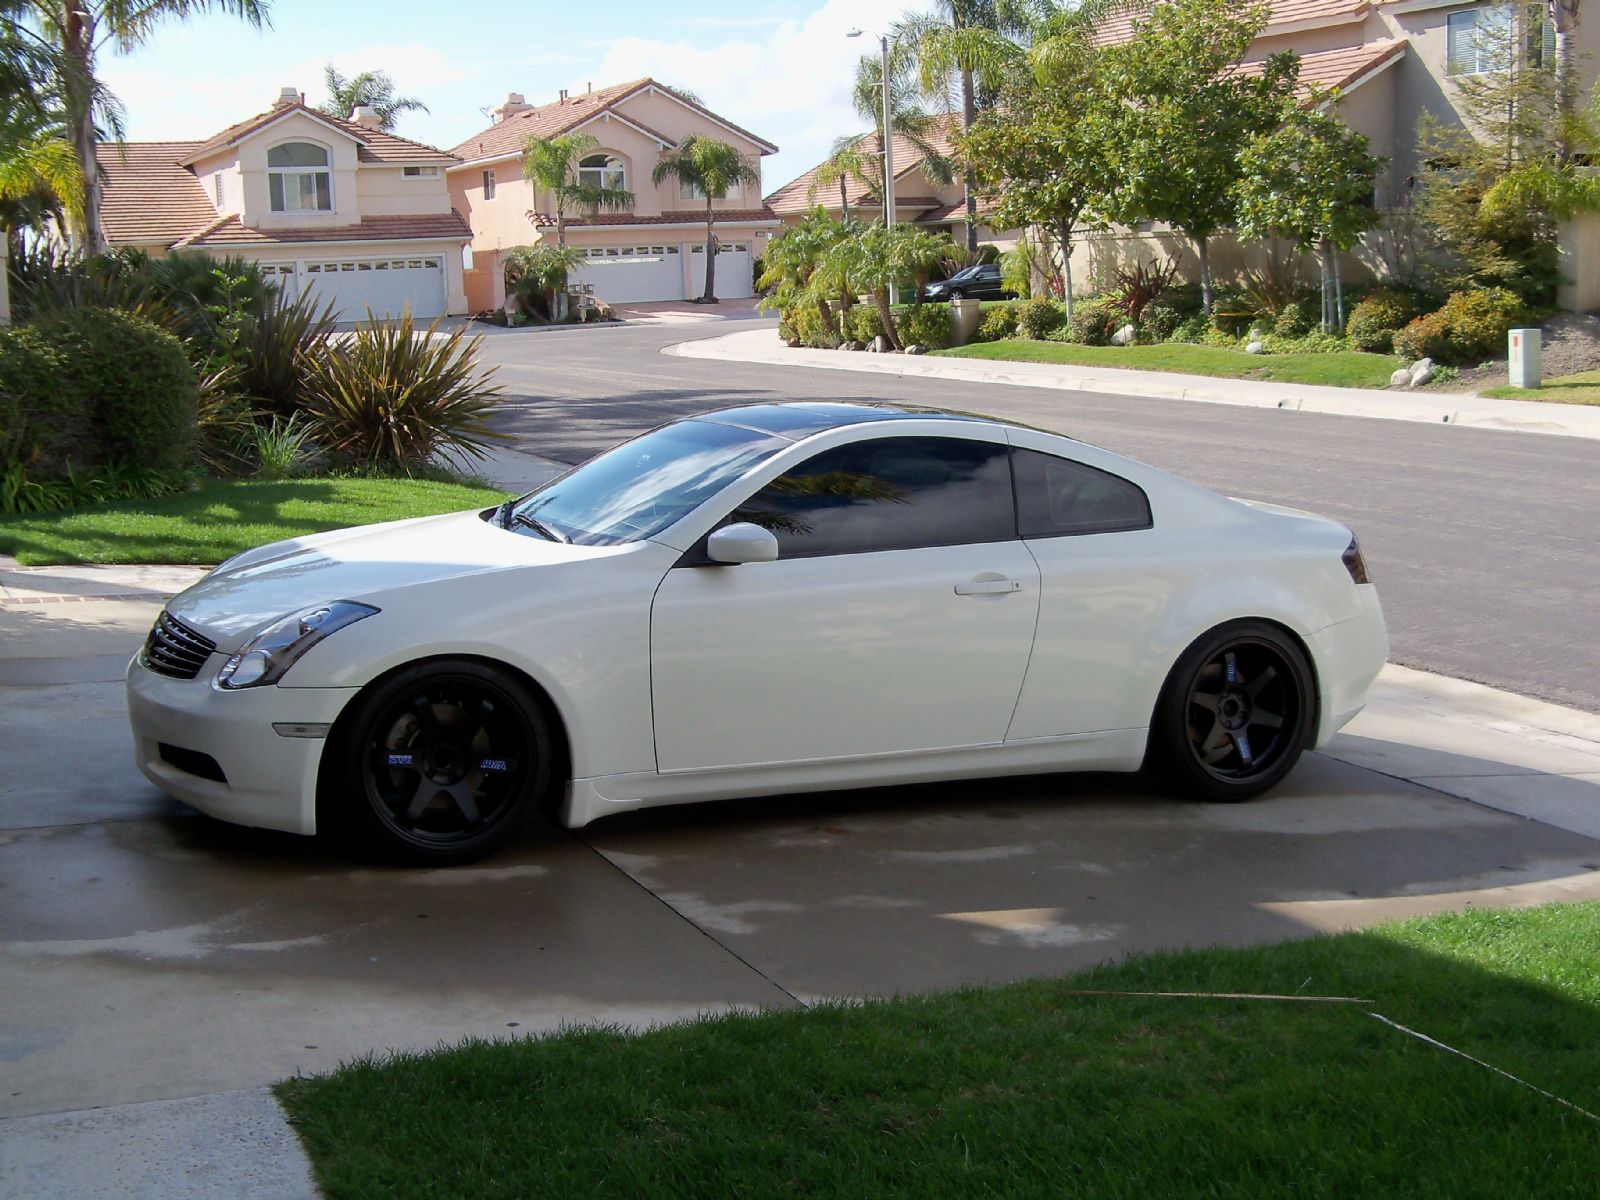 hight resolution of infinity g35 image custome 2005 infiniti g35 for sale lake forest california